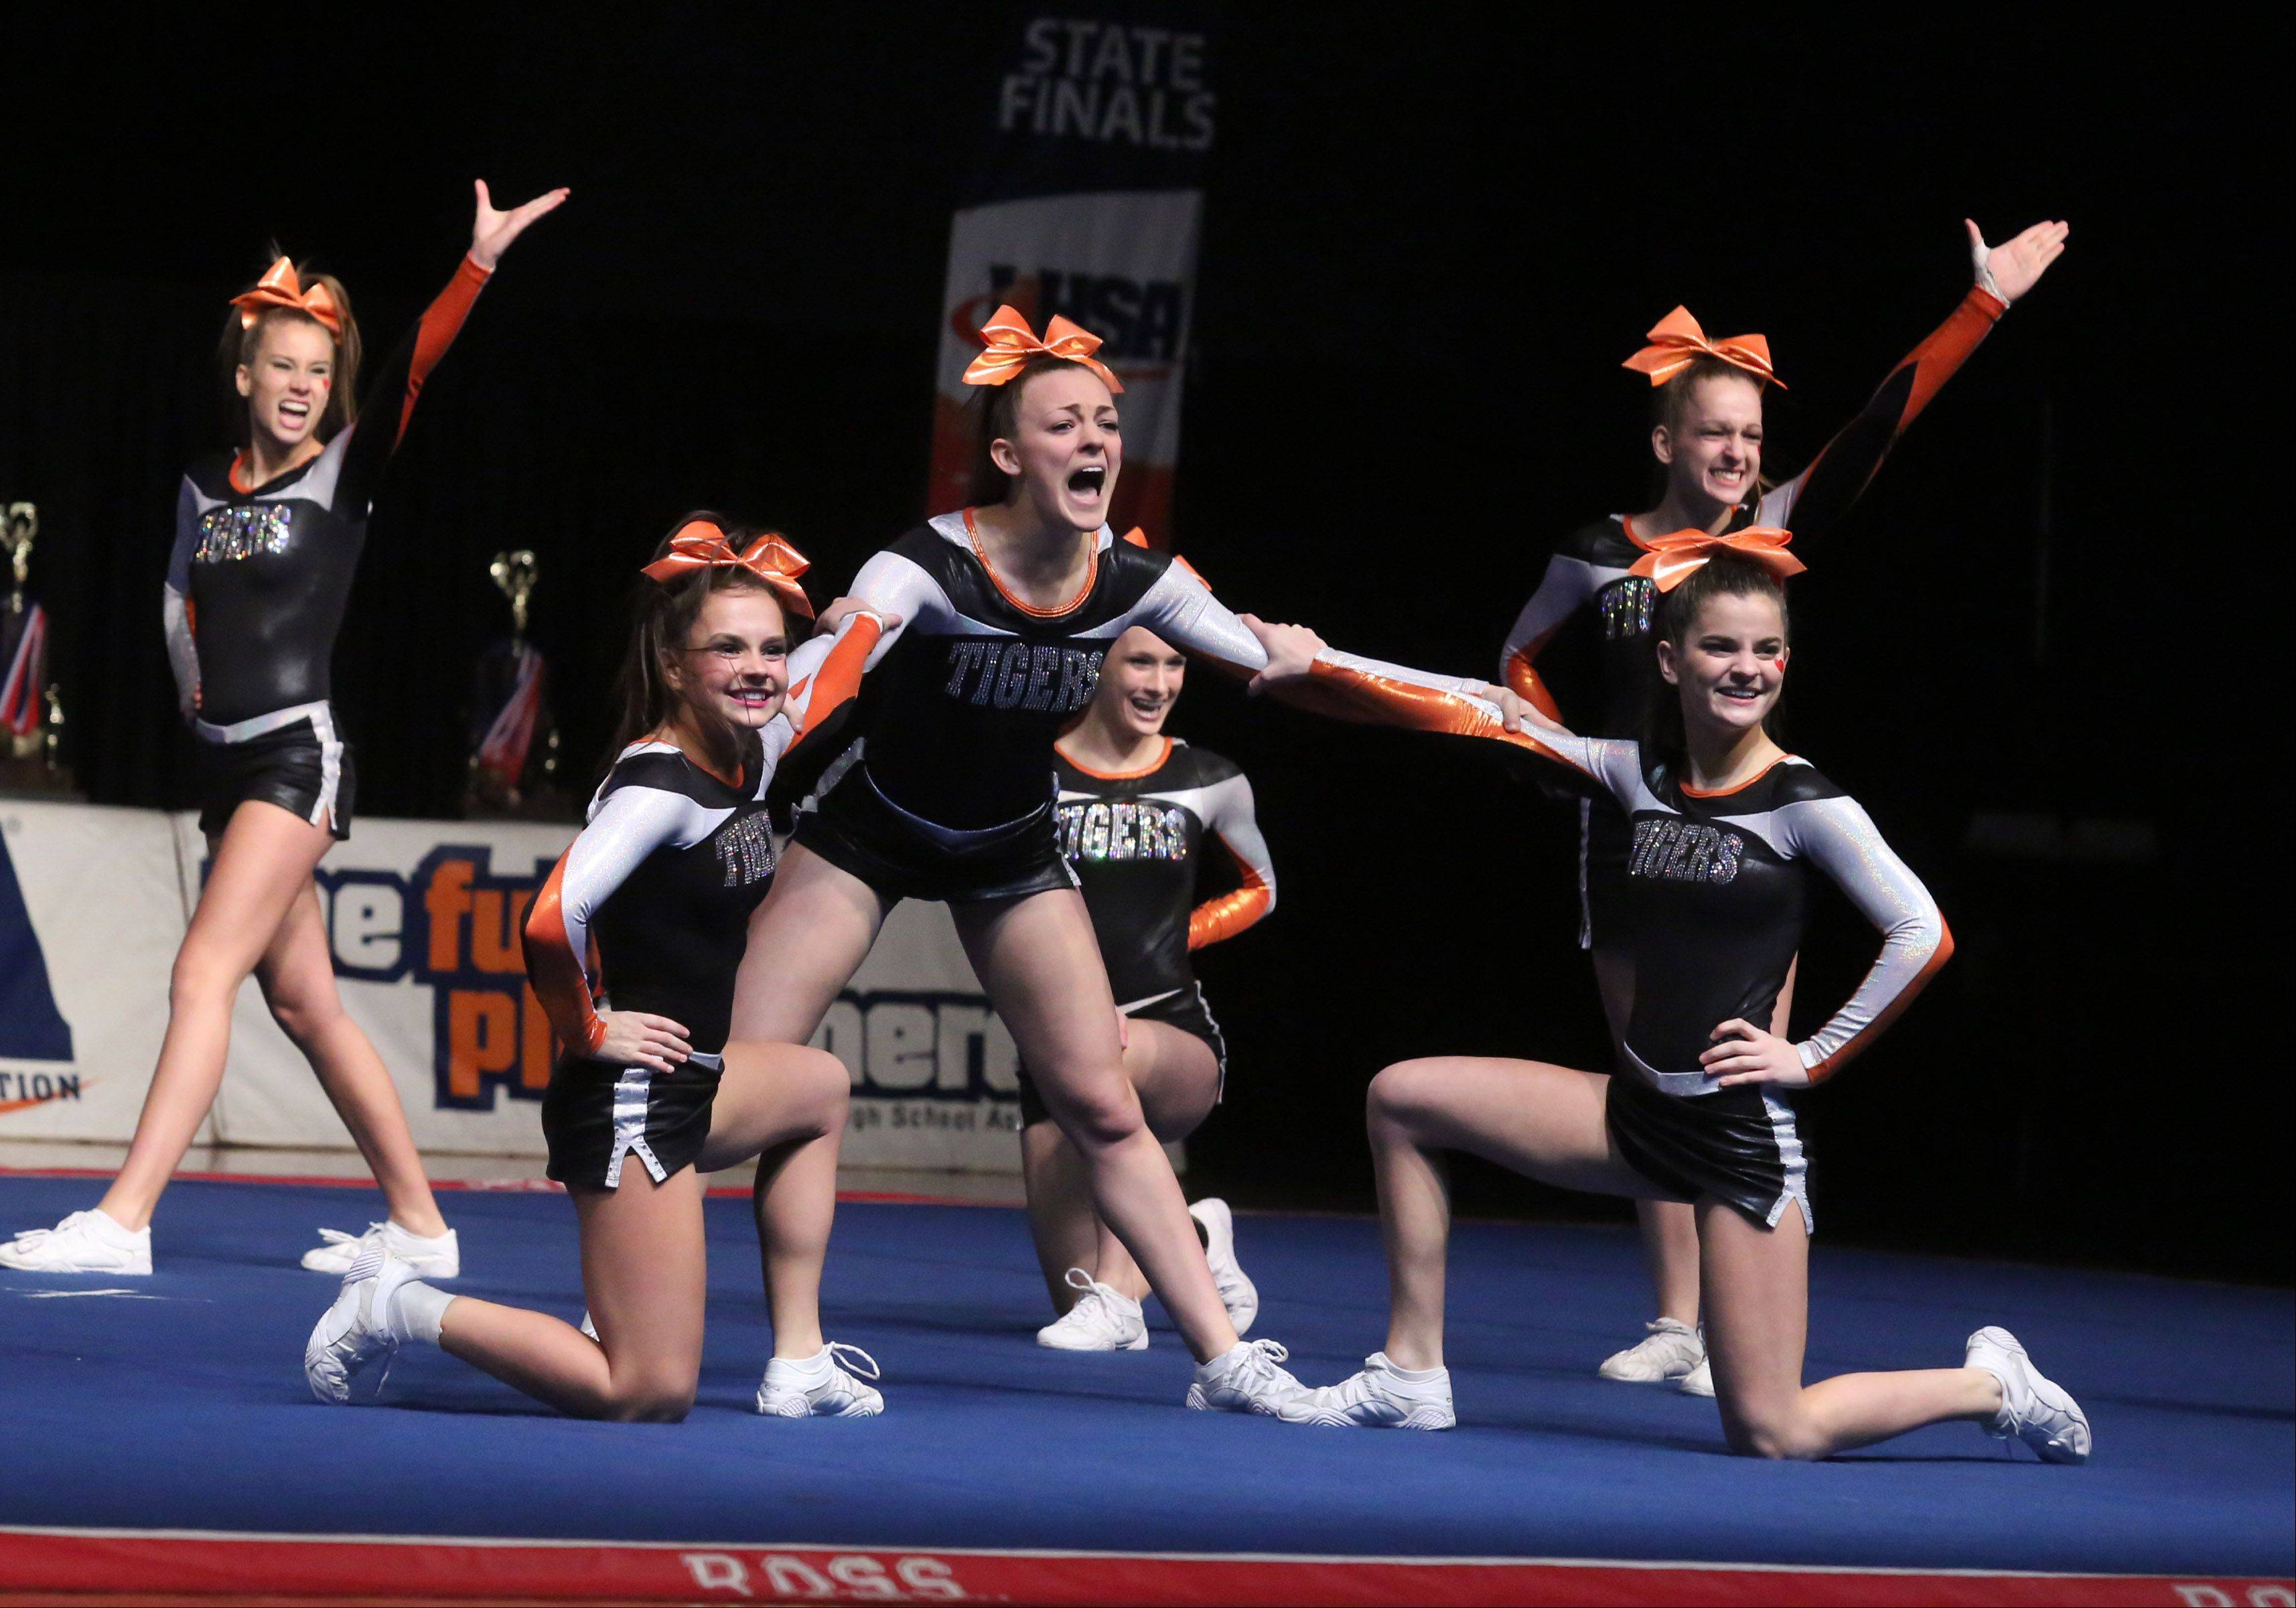 Crystal Lake Central High School's cheer team performs in the medium team category.